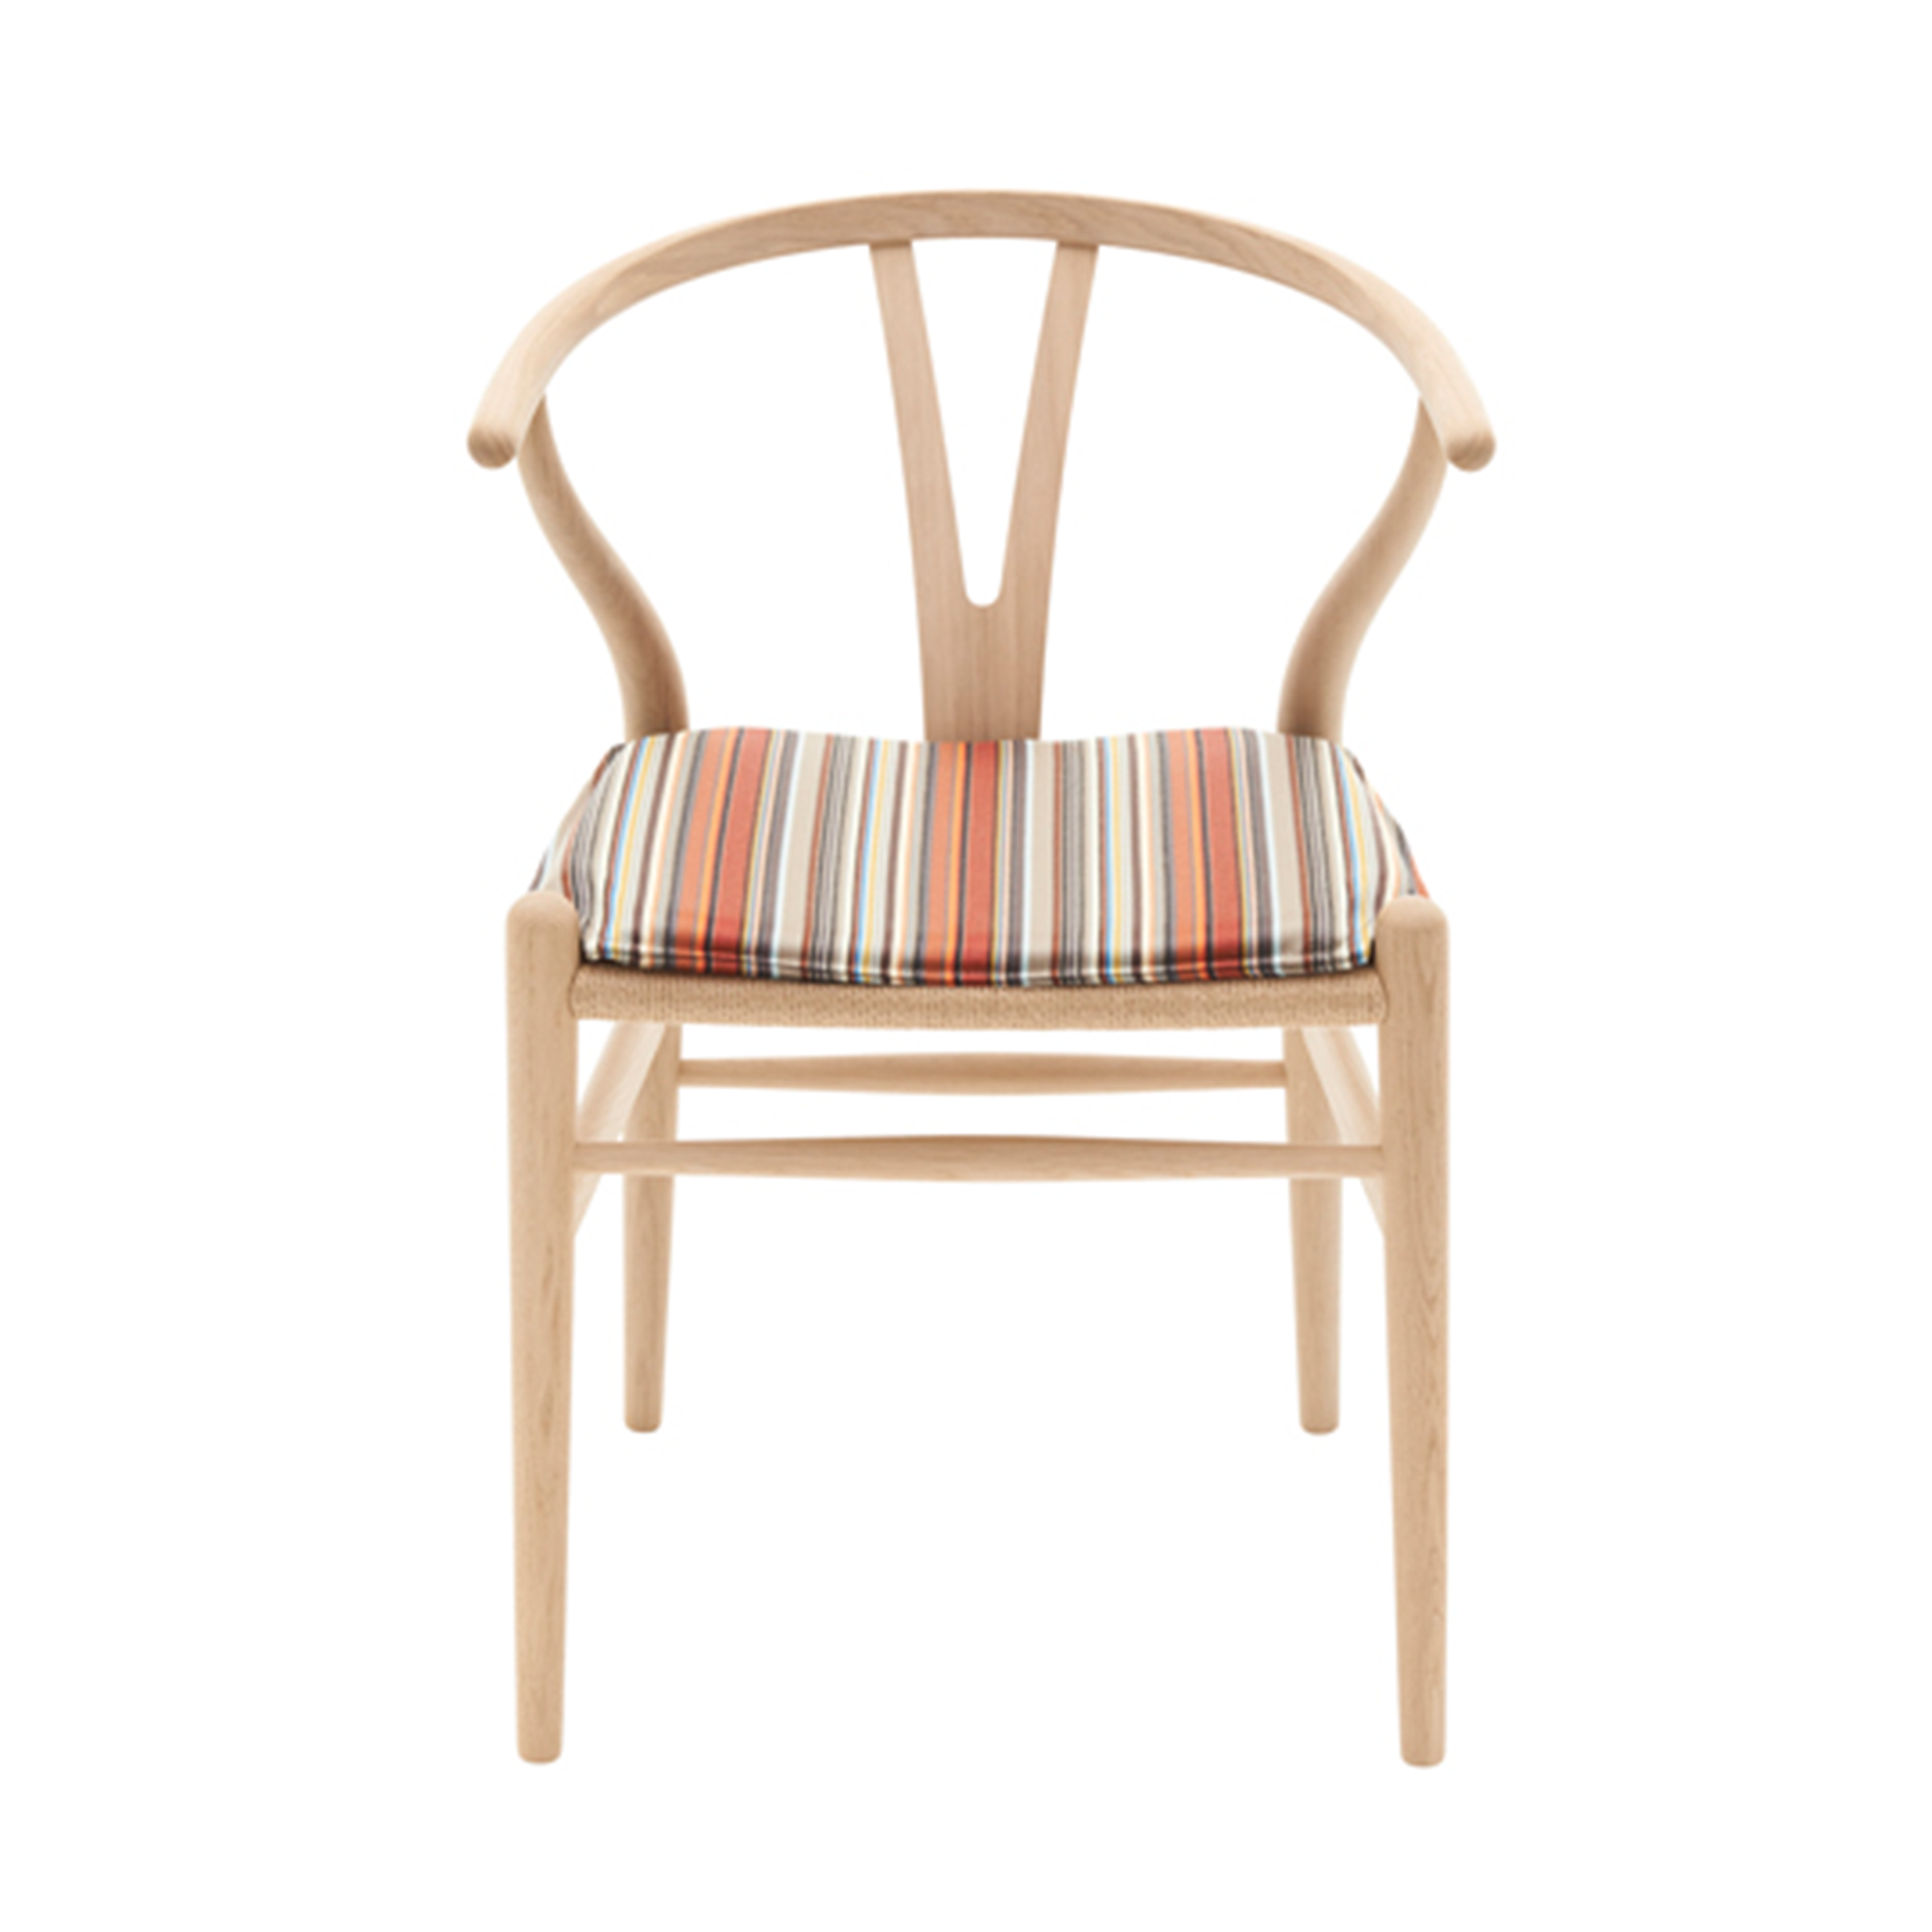 designapplause ch24 wishbone chair hans j wegner paul smith